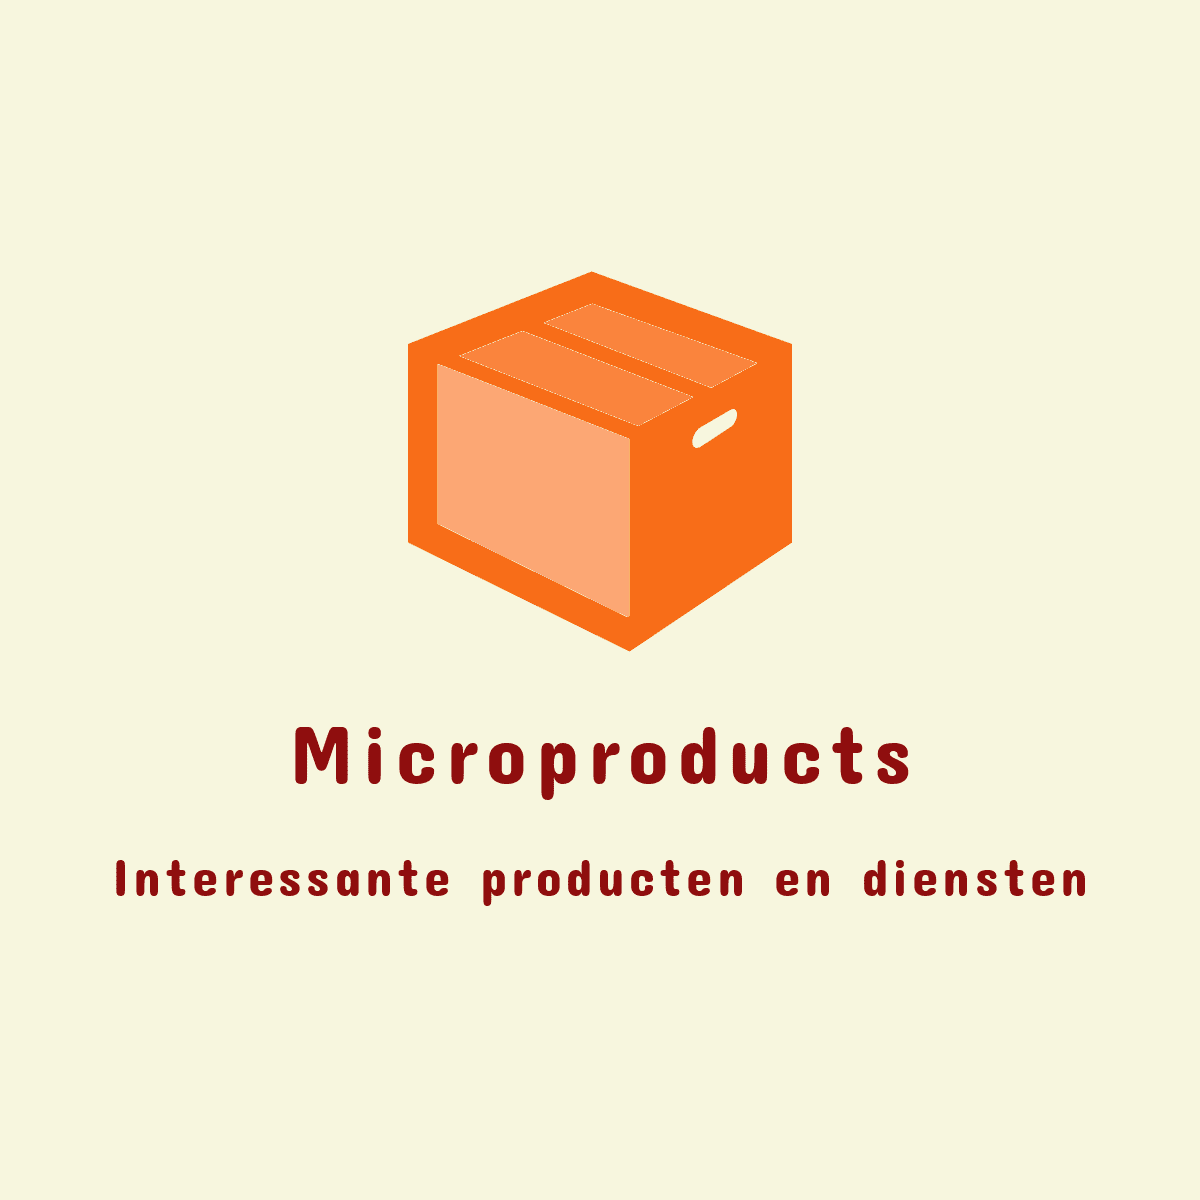 Microproducts